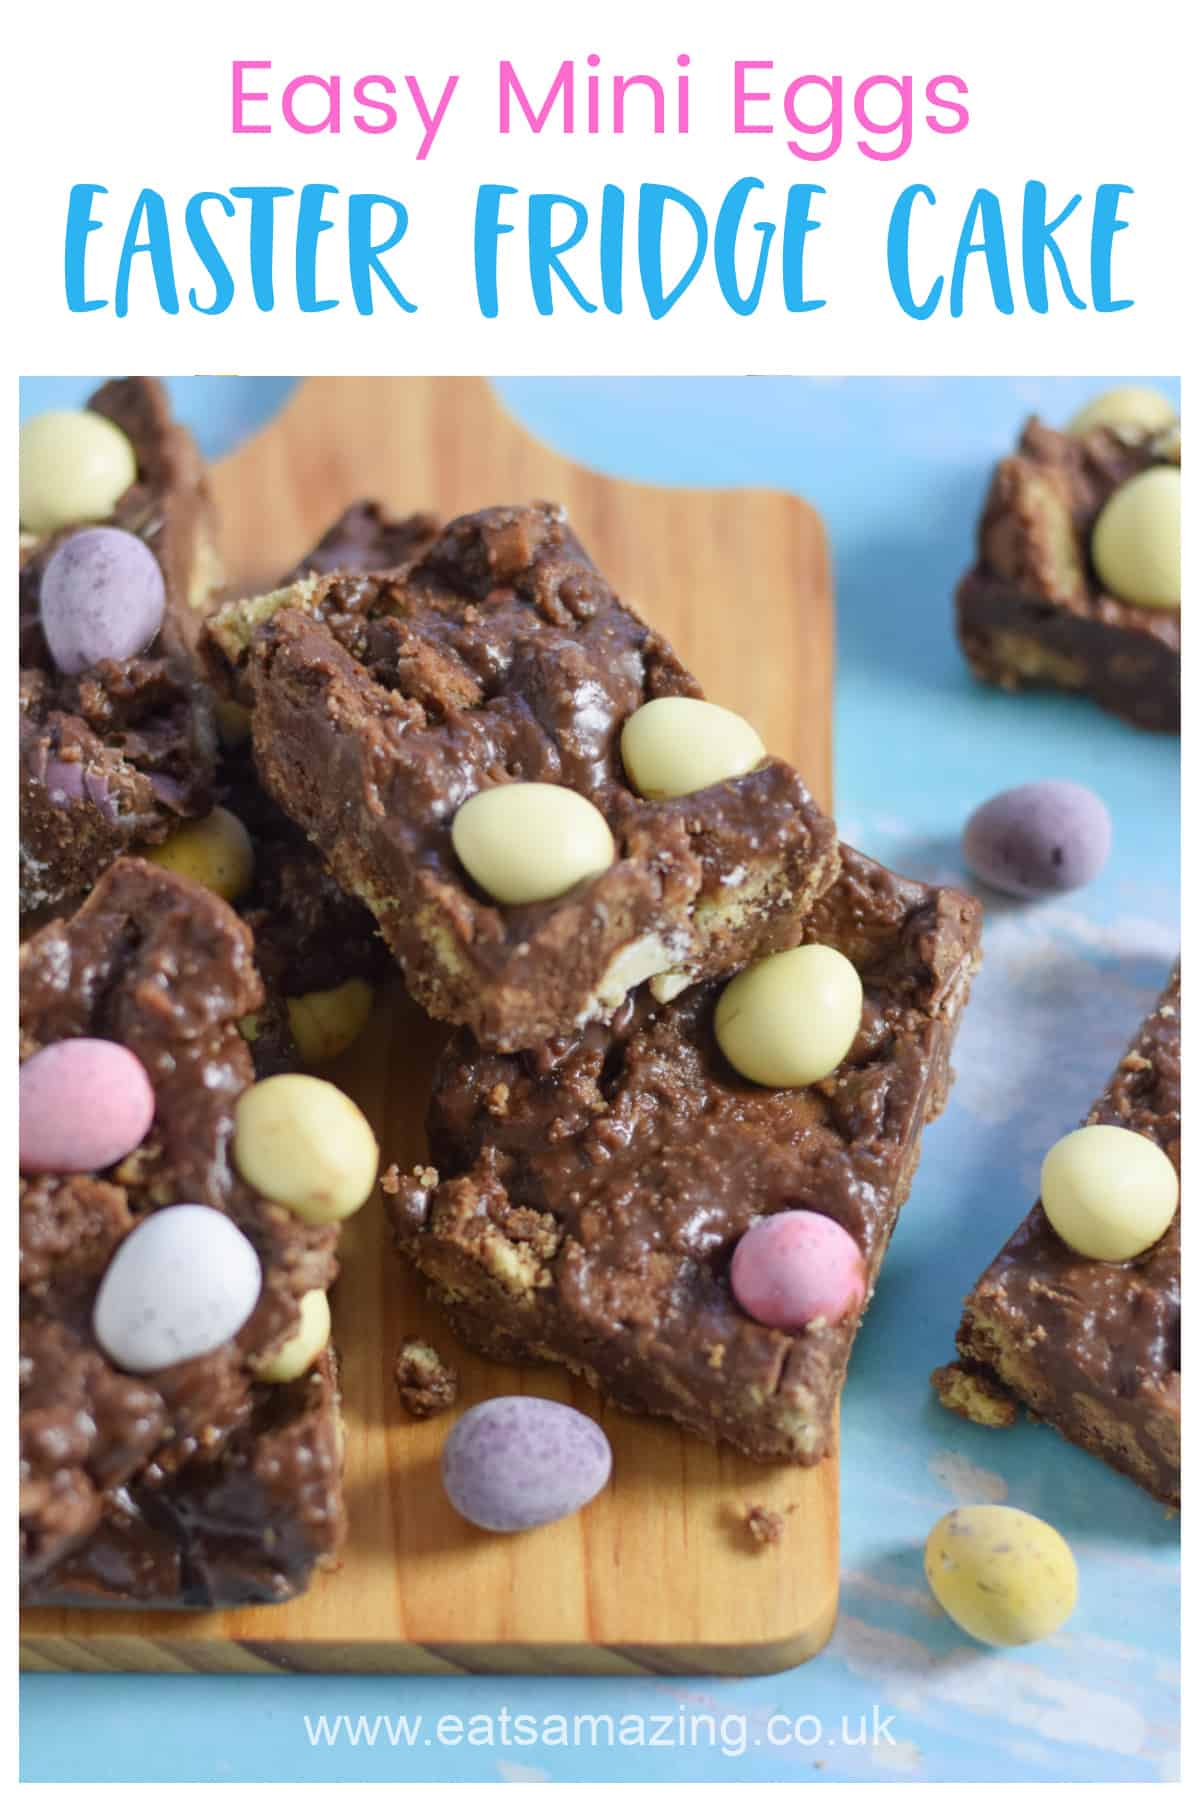 Quick and easy Mini Eggs Chocolate Fridge Cake - this no-bake dessert is perfect for Easter baking with kids